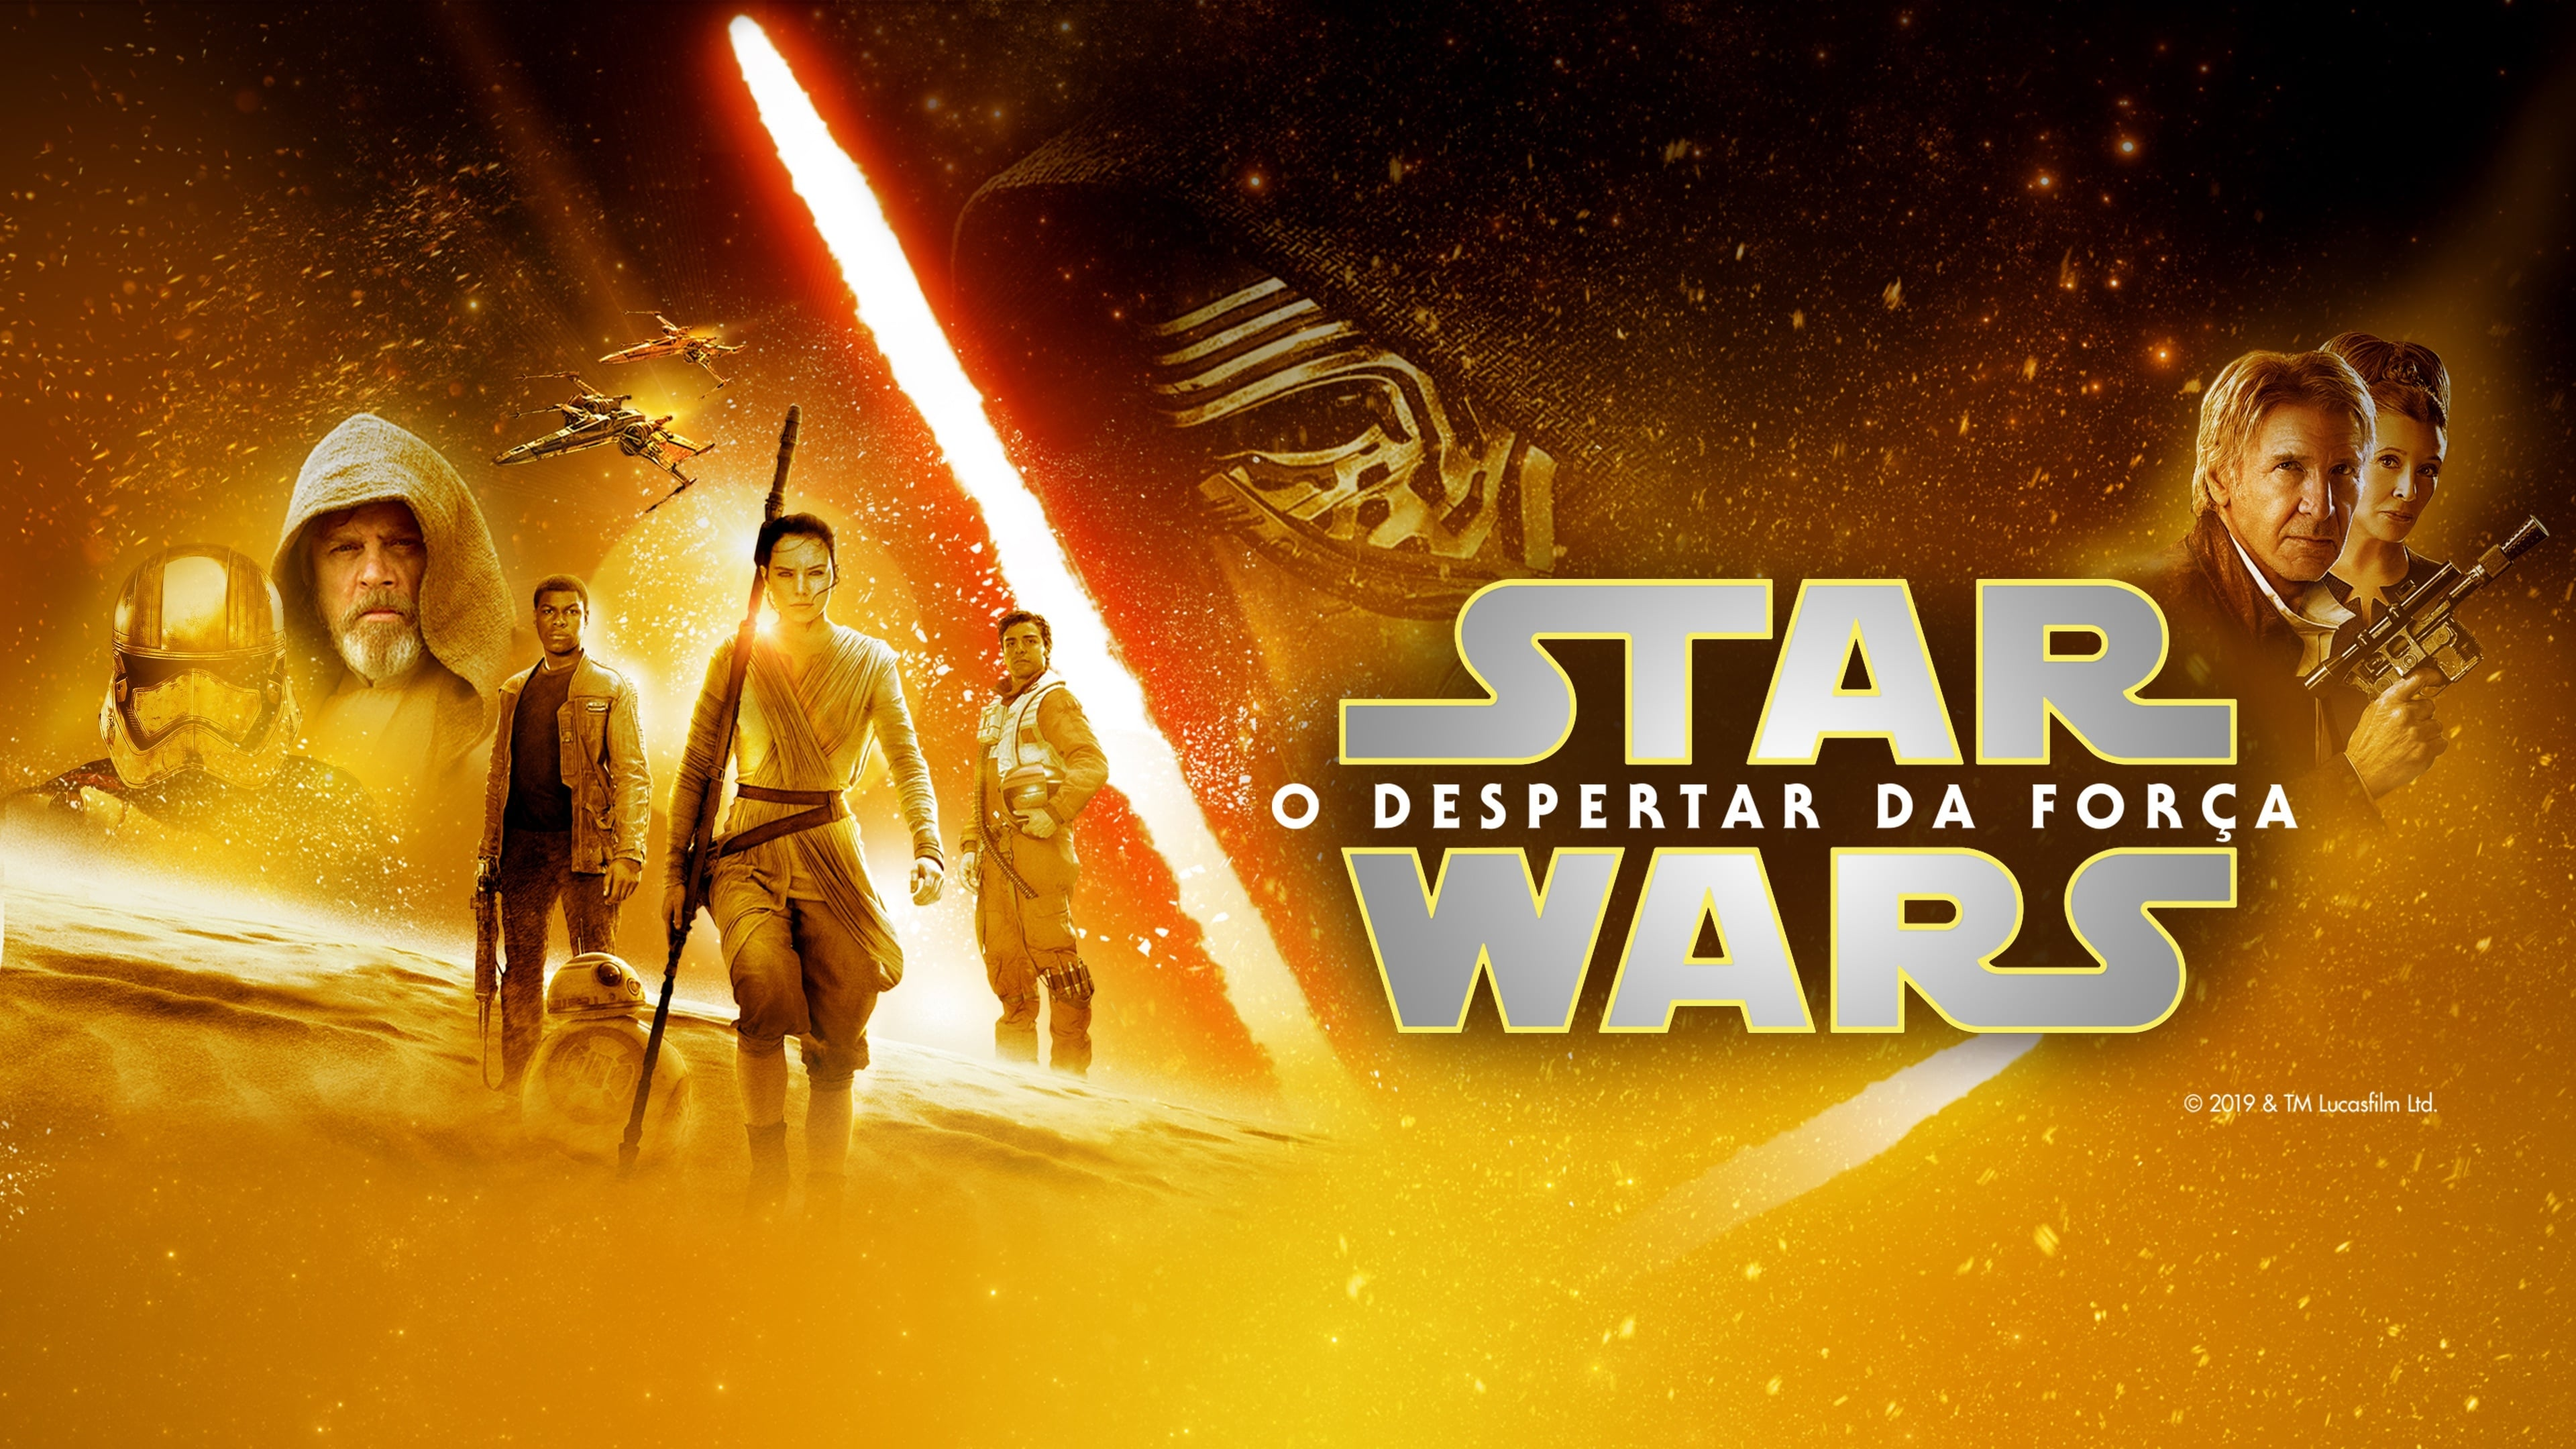 Watch Star Wars The Force Awakens Online Free